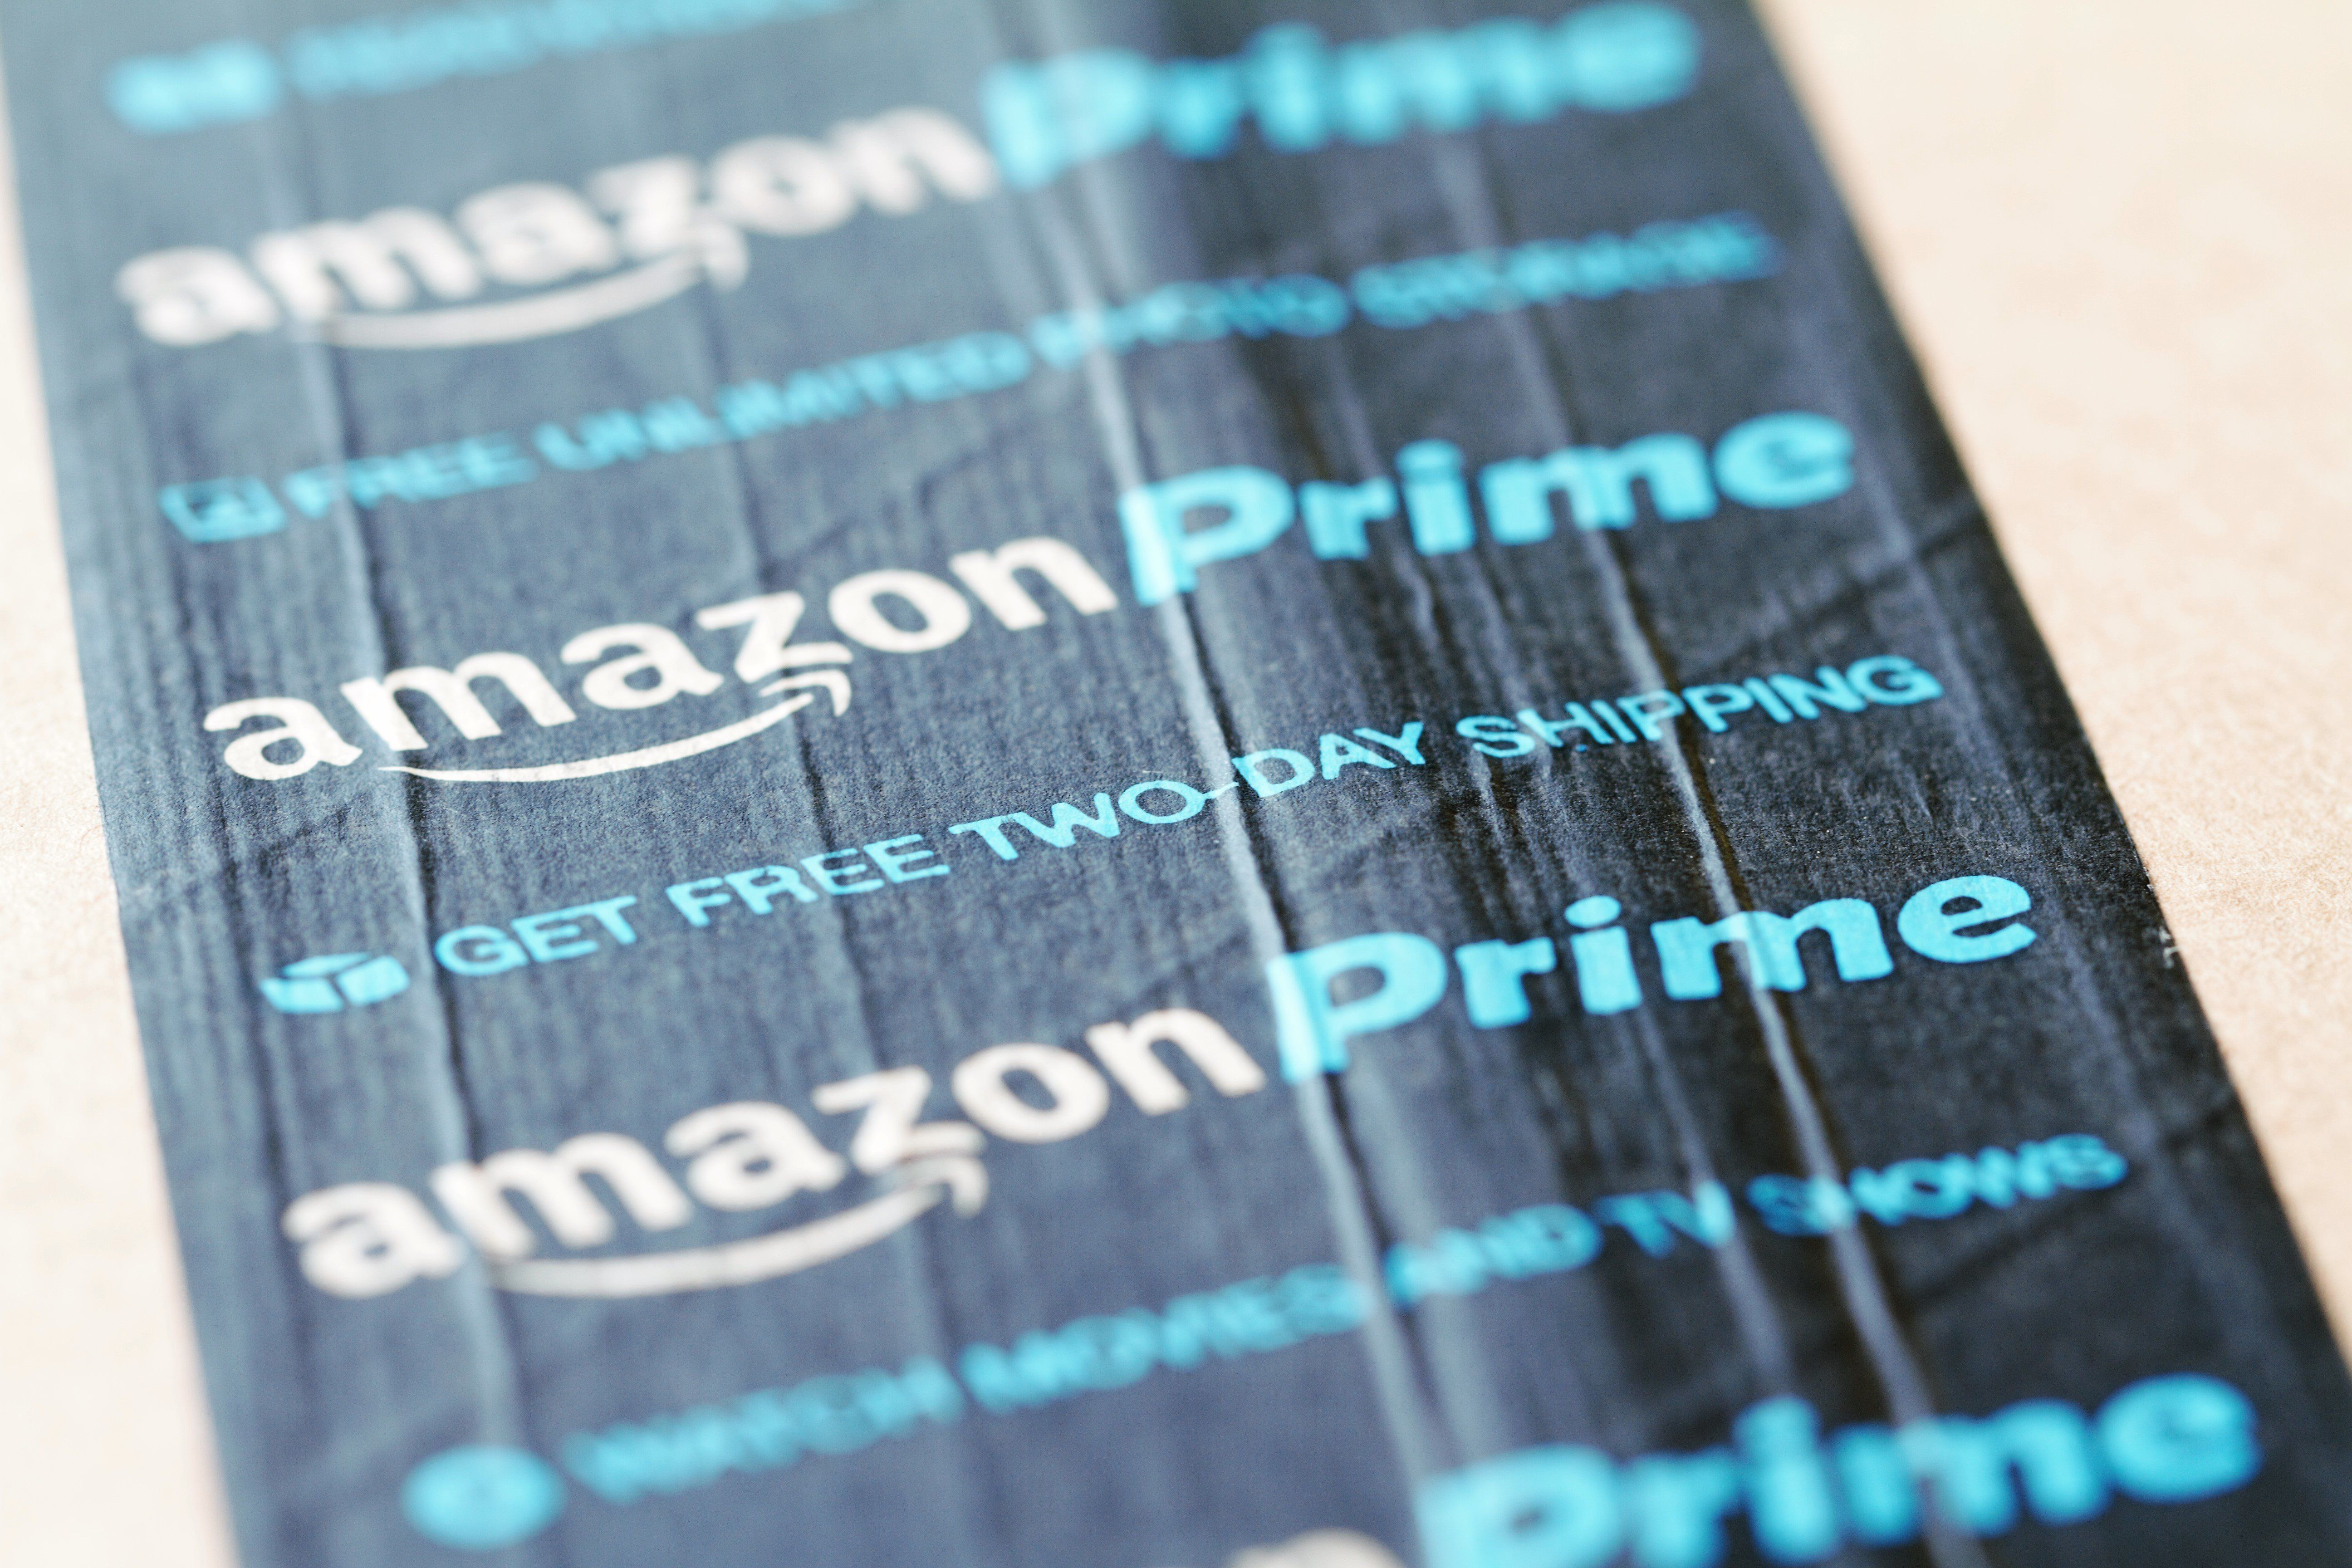 West Palm Beach, USA - June 19, 2016: Amazon Prime packing tape on an Amazon.com shipping box. Amazon Prime is the premium service that provides unlimited  two day shipping, free Cloud storage of photos, video movie streaming and Kindle book downloads.